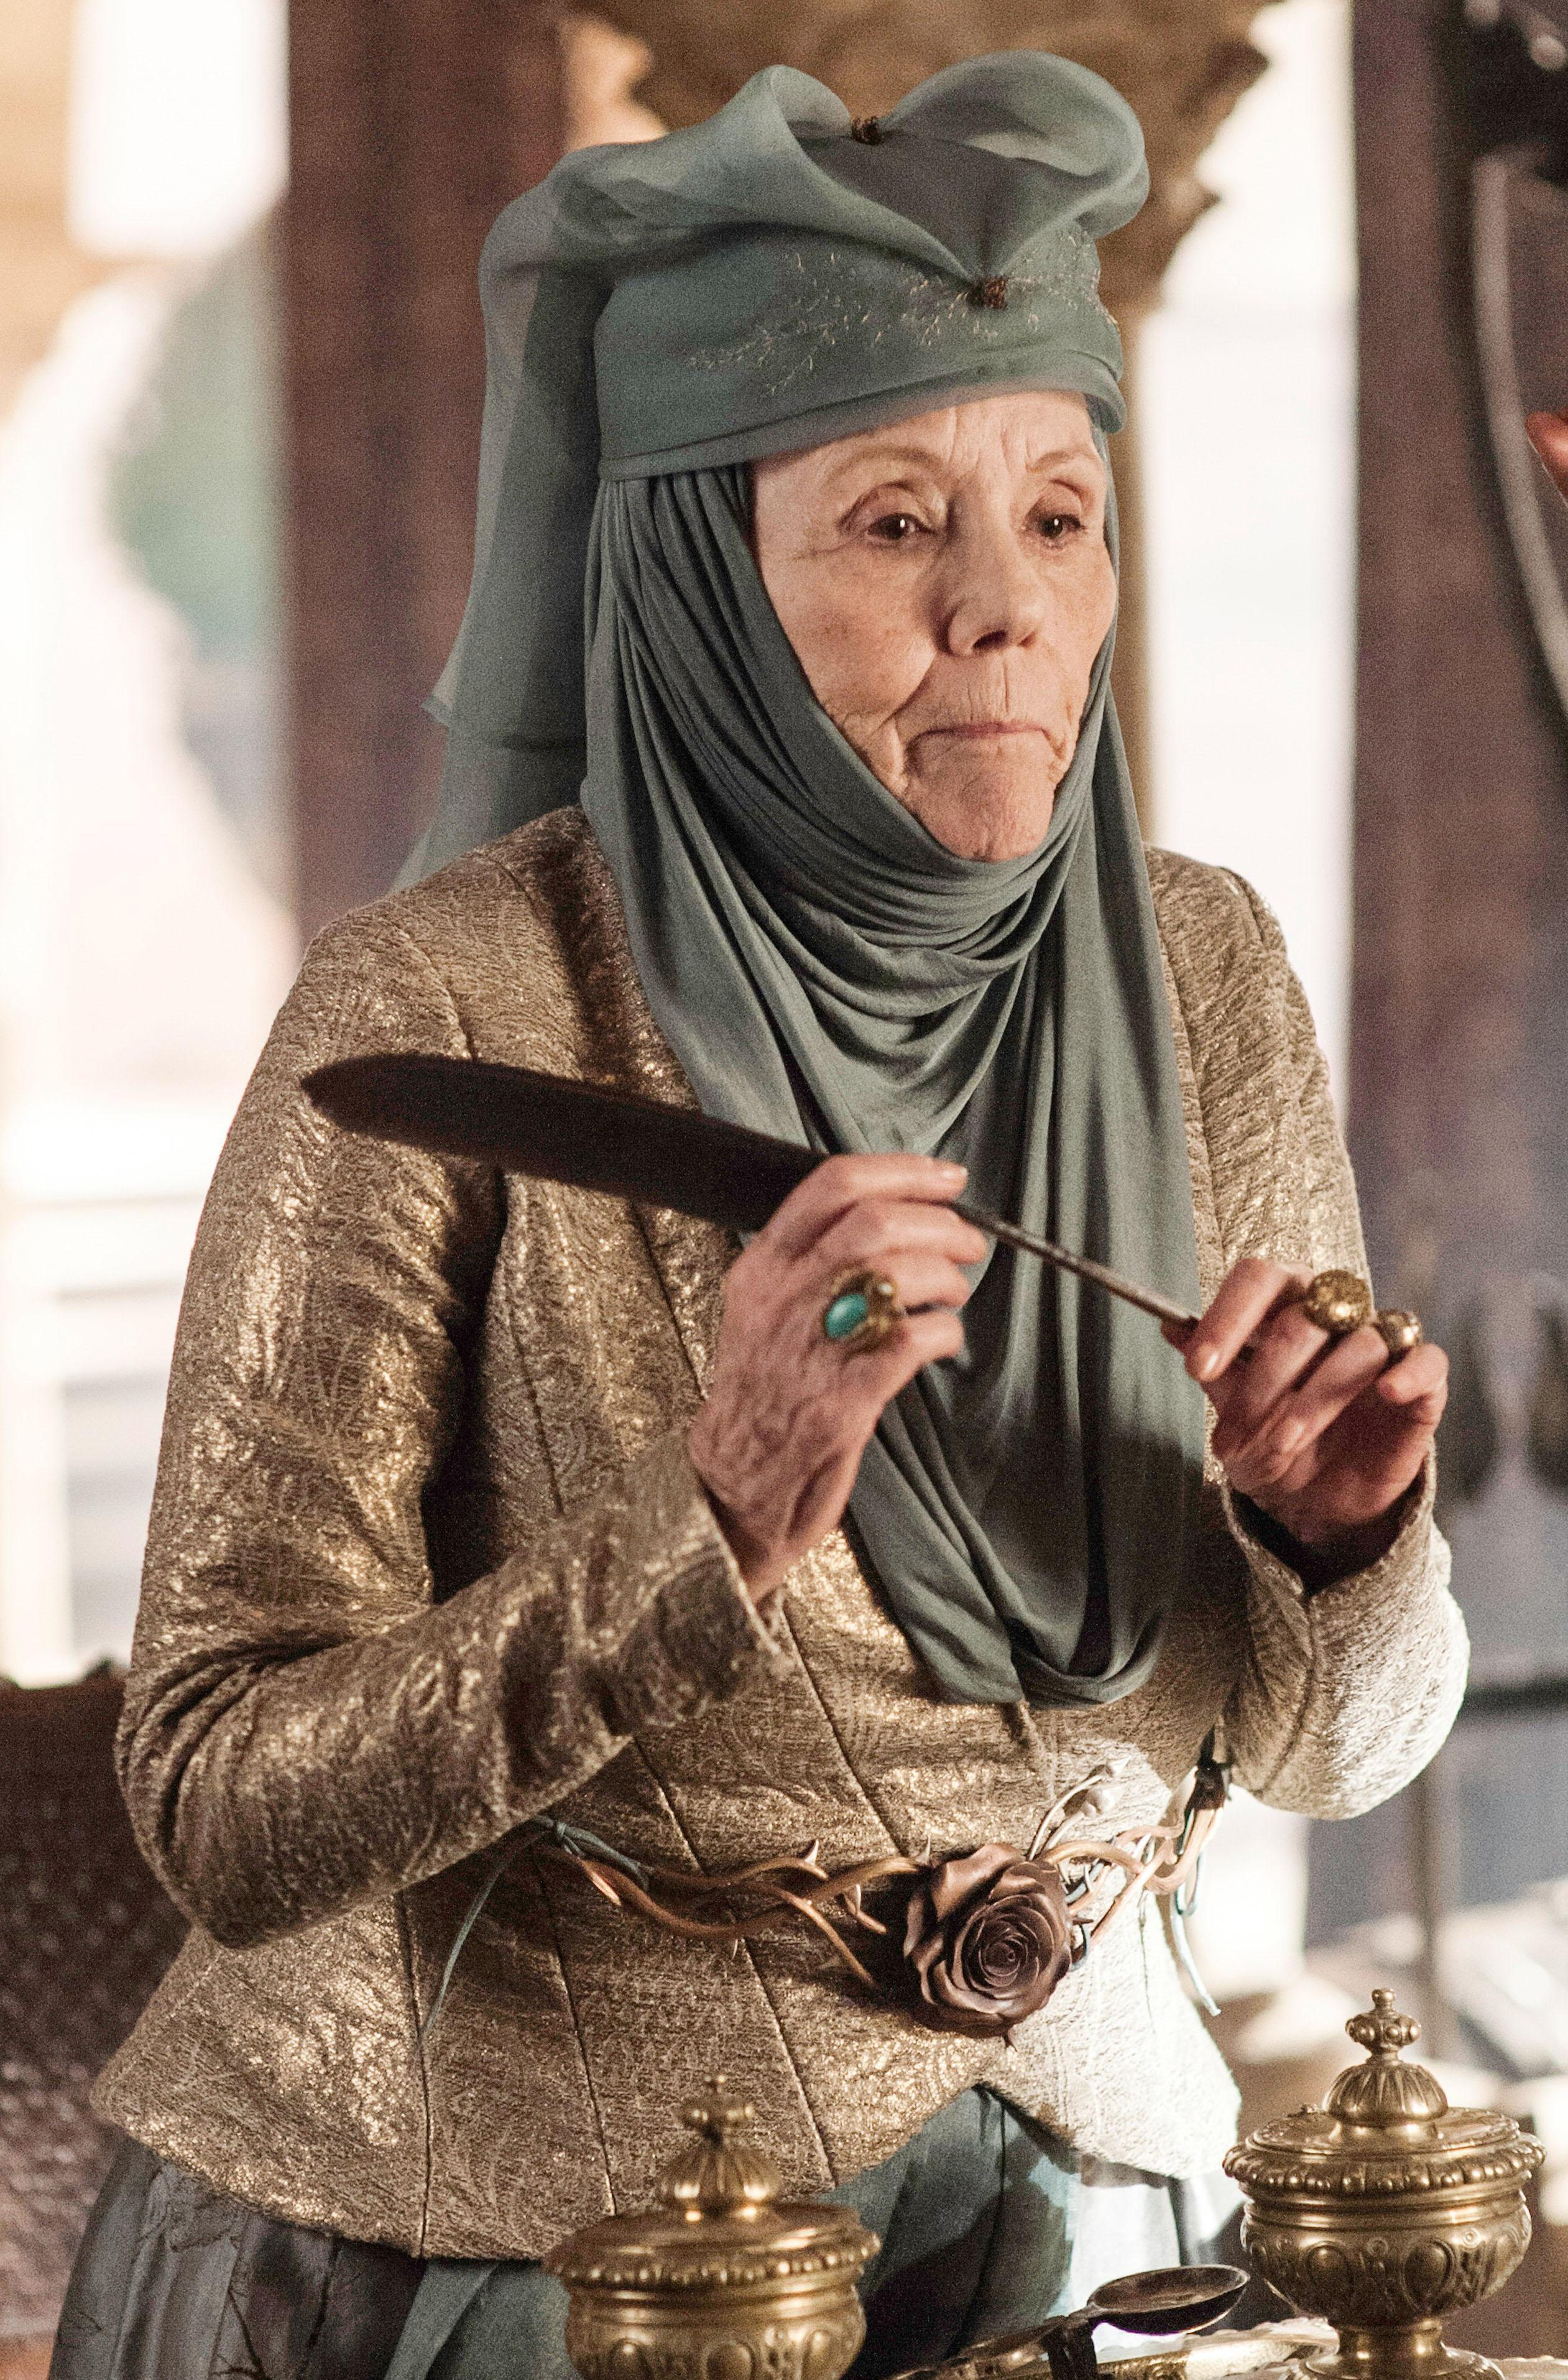 Game Of Thrones actress Dame Diana Rigg latest star to sign up for ITV's  smash-hit period drama Victoria